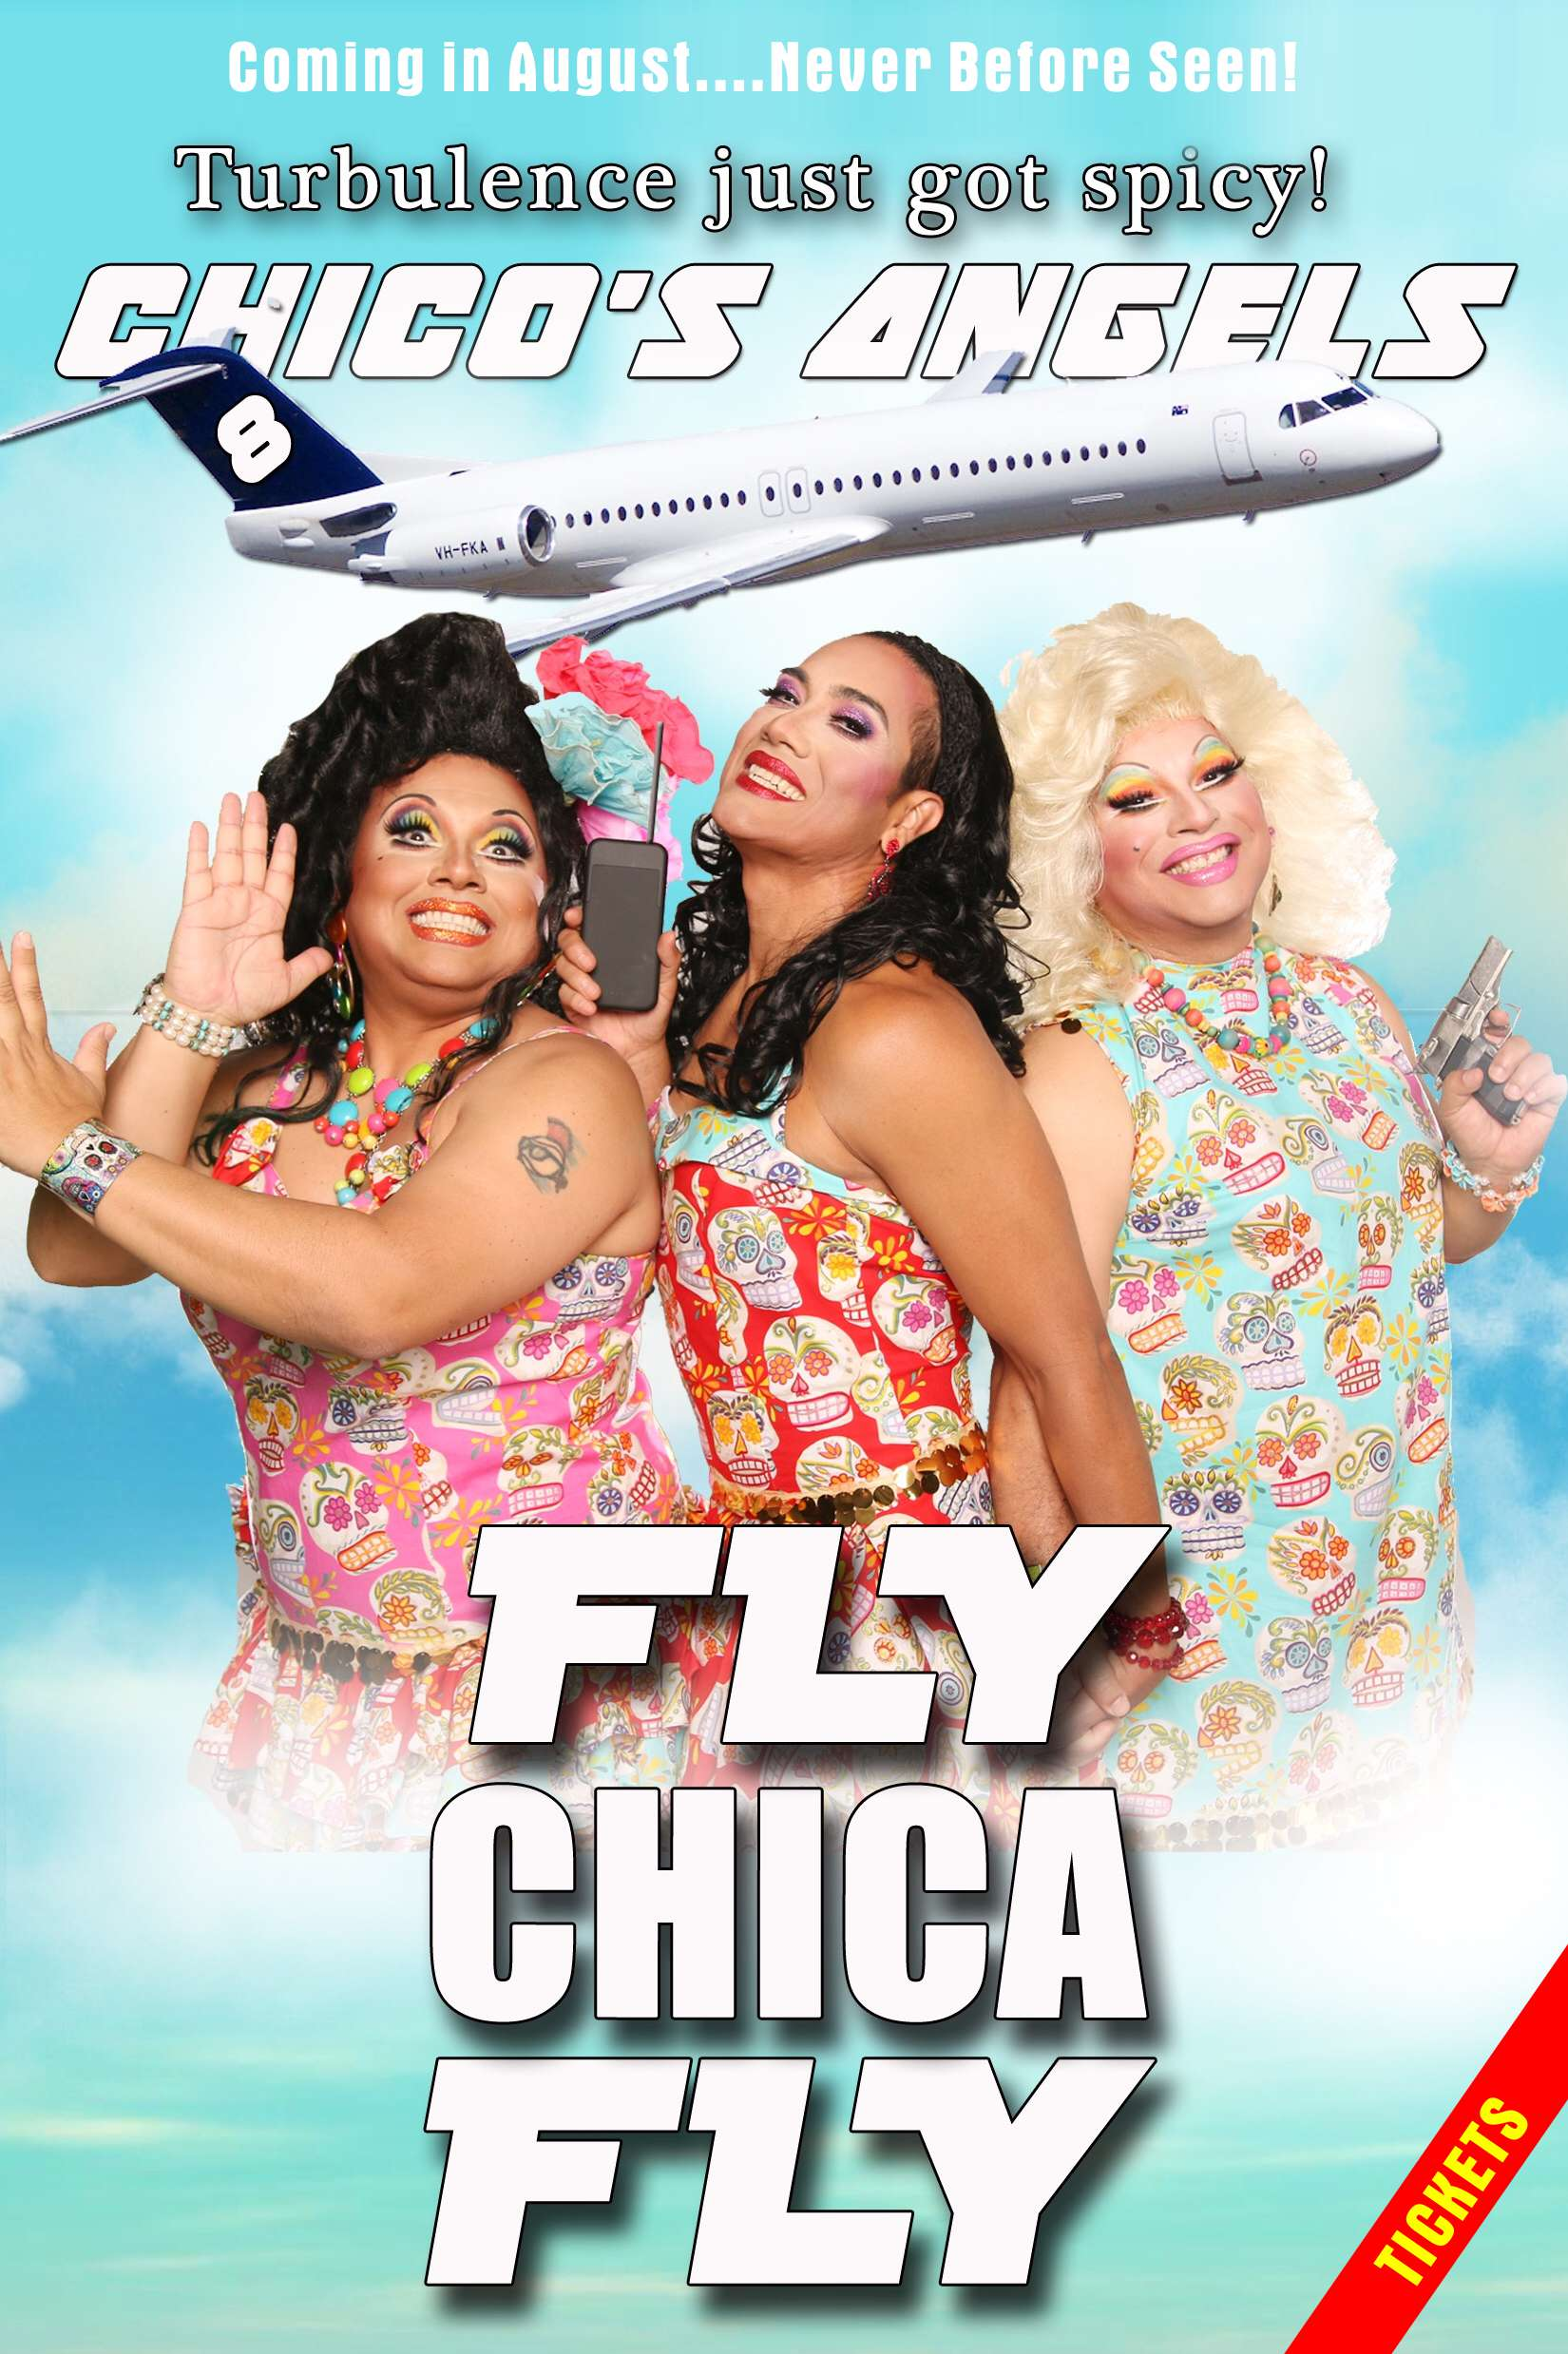 Fly Chica Fly